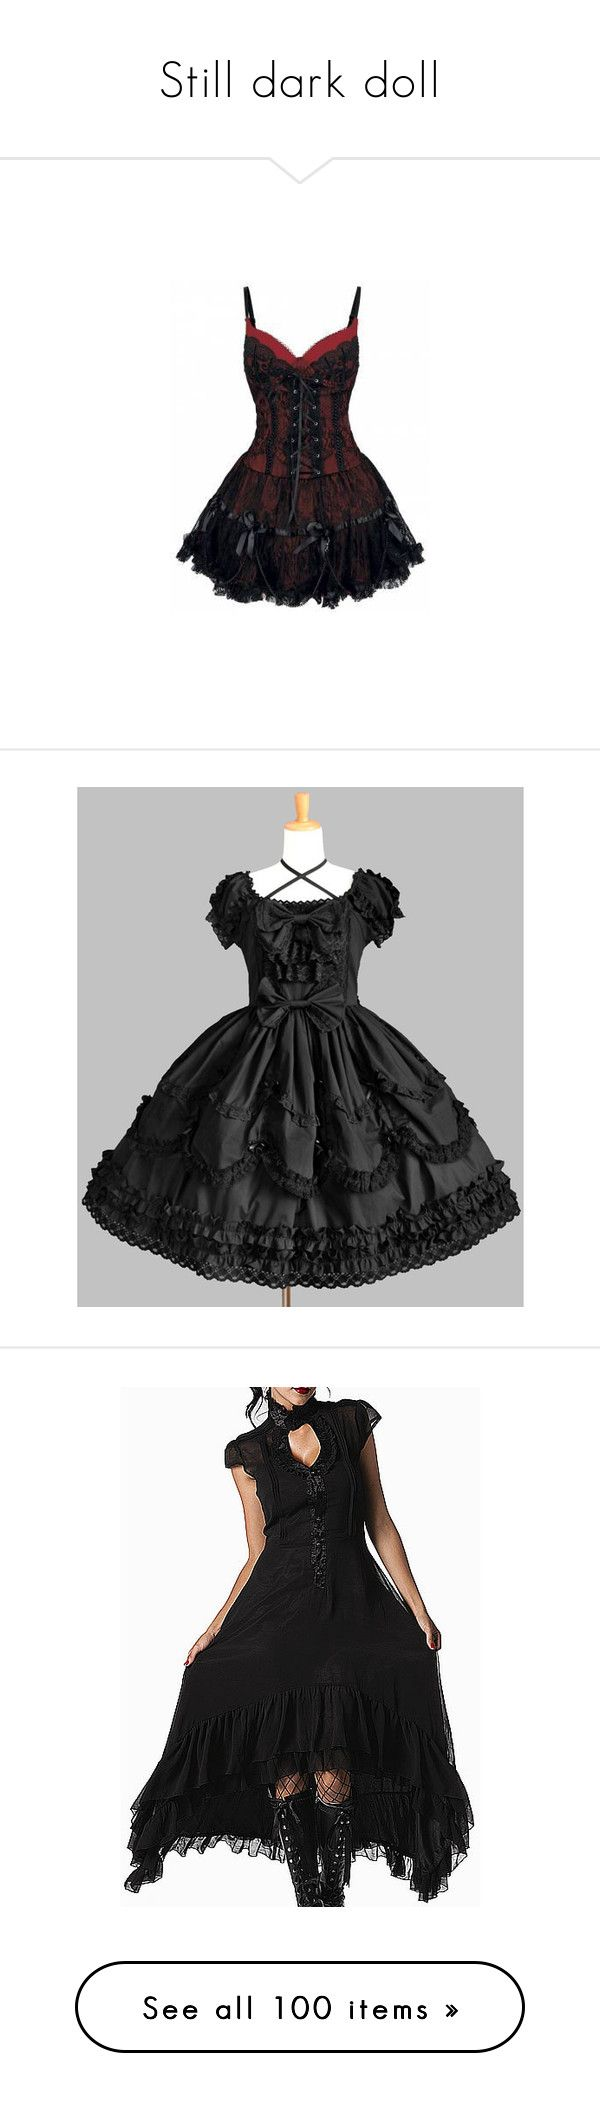 """""""Still dark doll"""" by huntress-of-artemis ❤ liked on Polyvore featuring dresses, vestidos, short dresses, corsets, corset mini dress, gothic clothing dresses, goth corset, metal corset, lolita and gothic"""